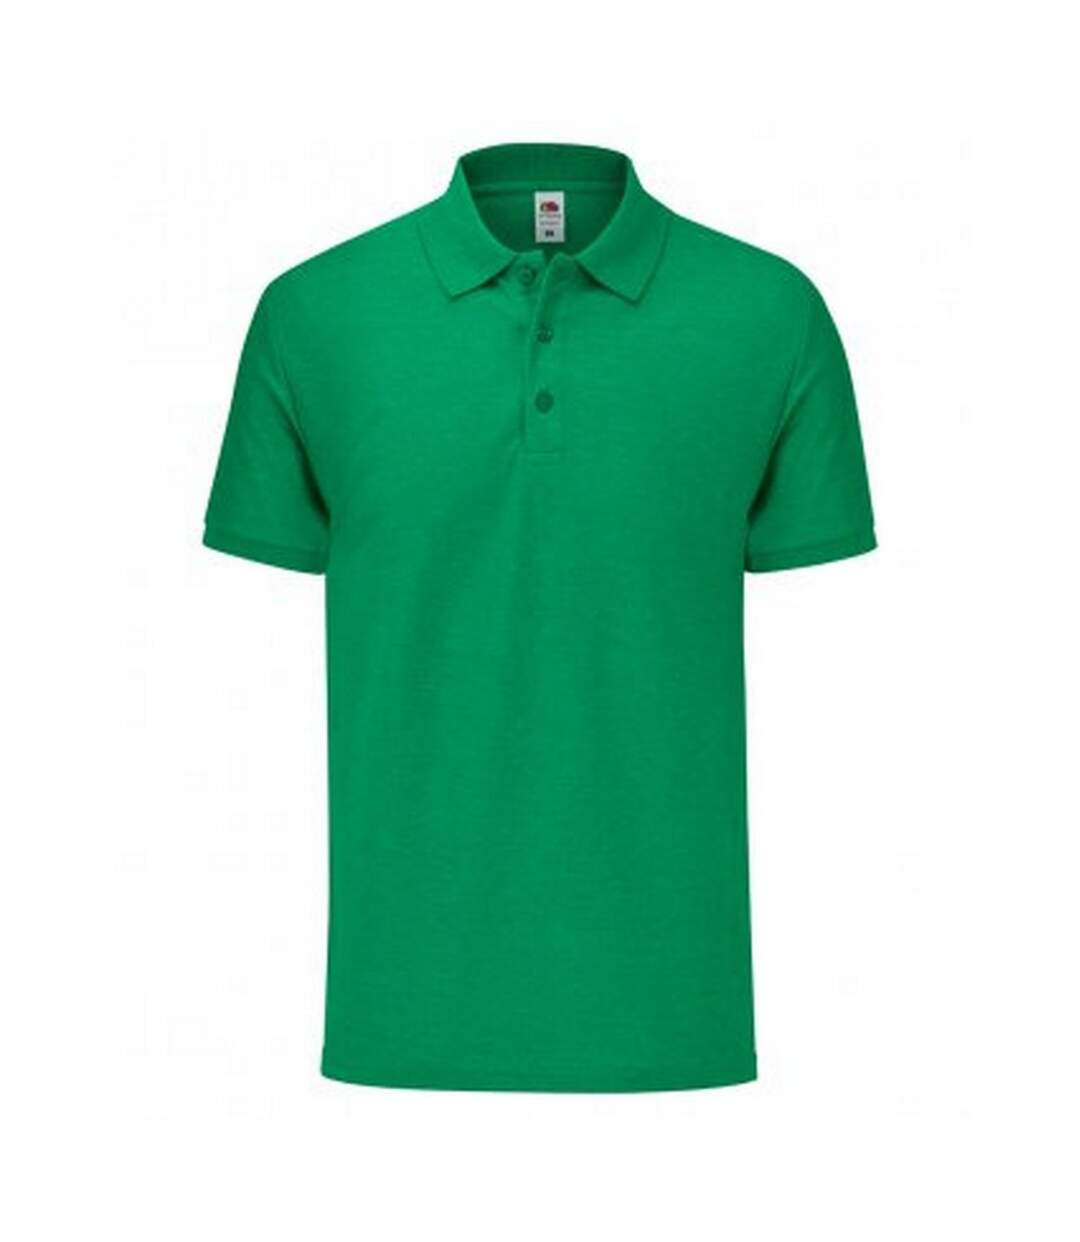 Fruit Of The Loom Mens Tailored Poly/Cotton Piqu Polo Shirt (Heather Green) - UTPC3572